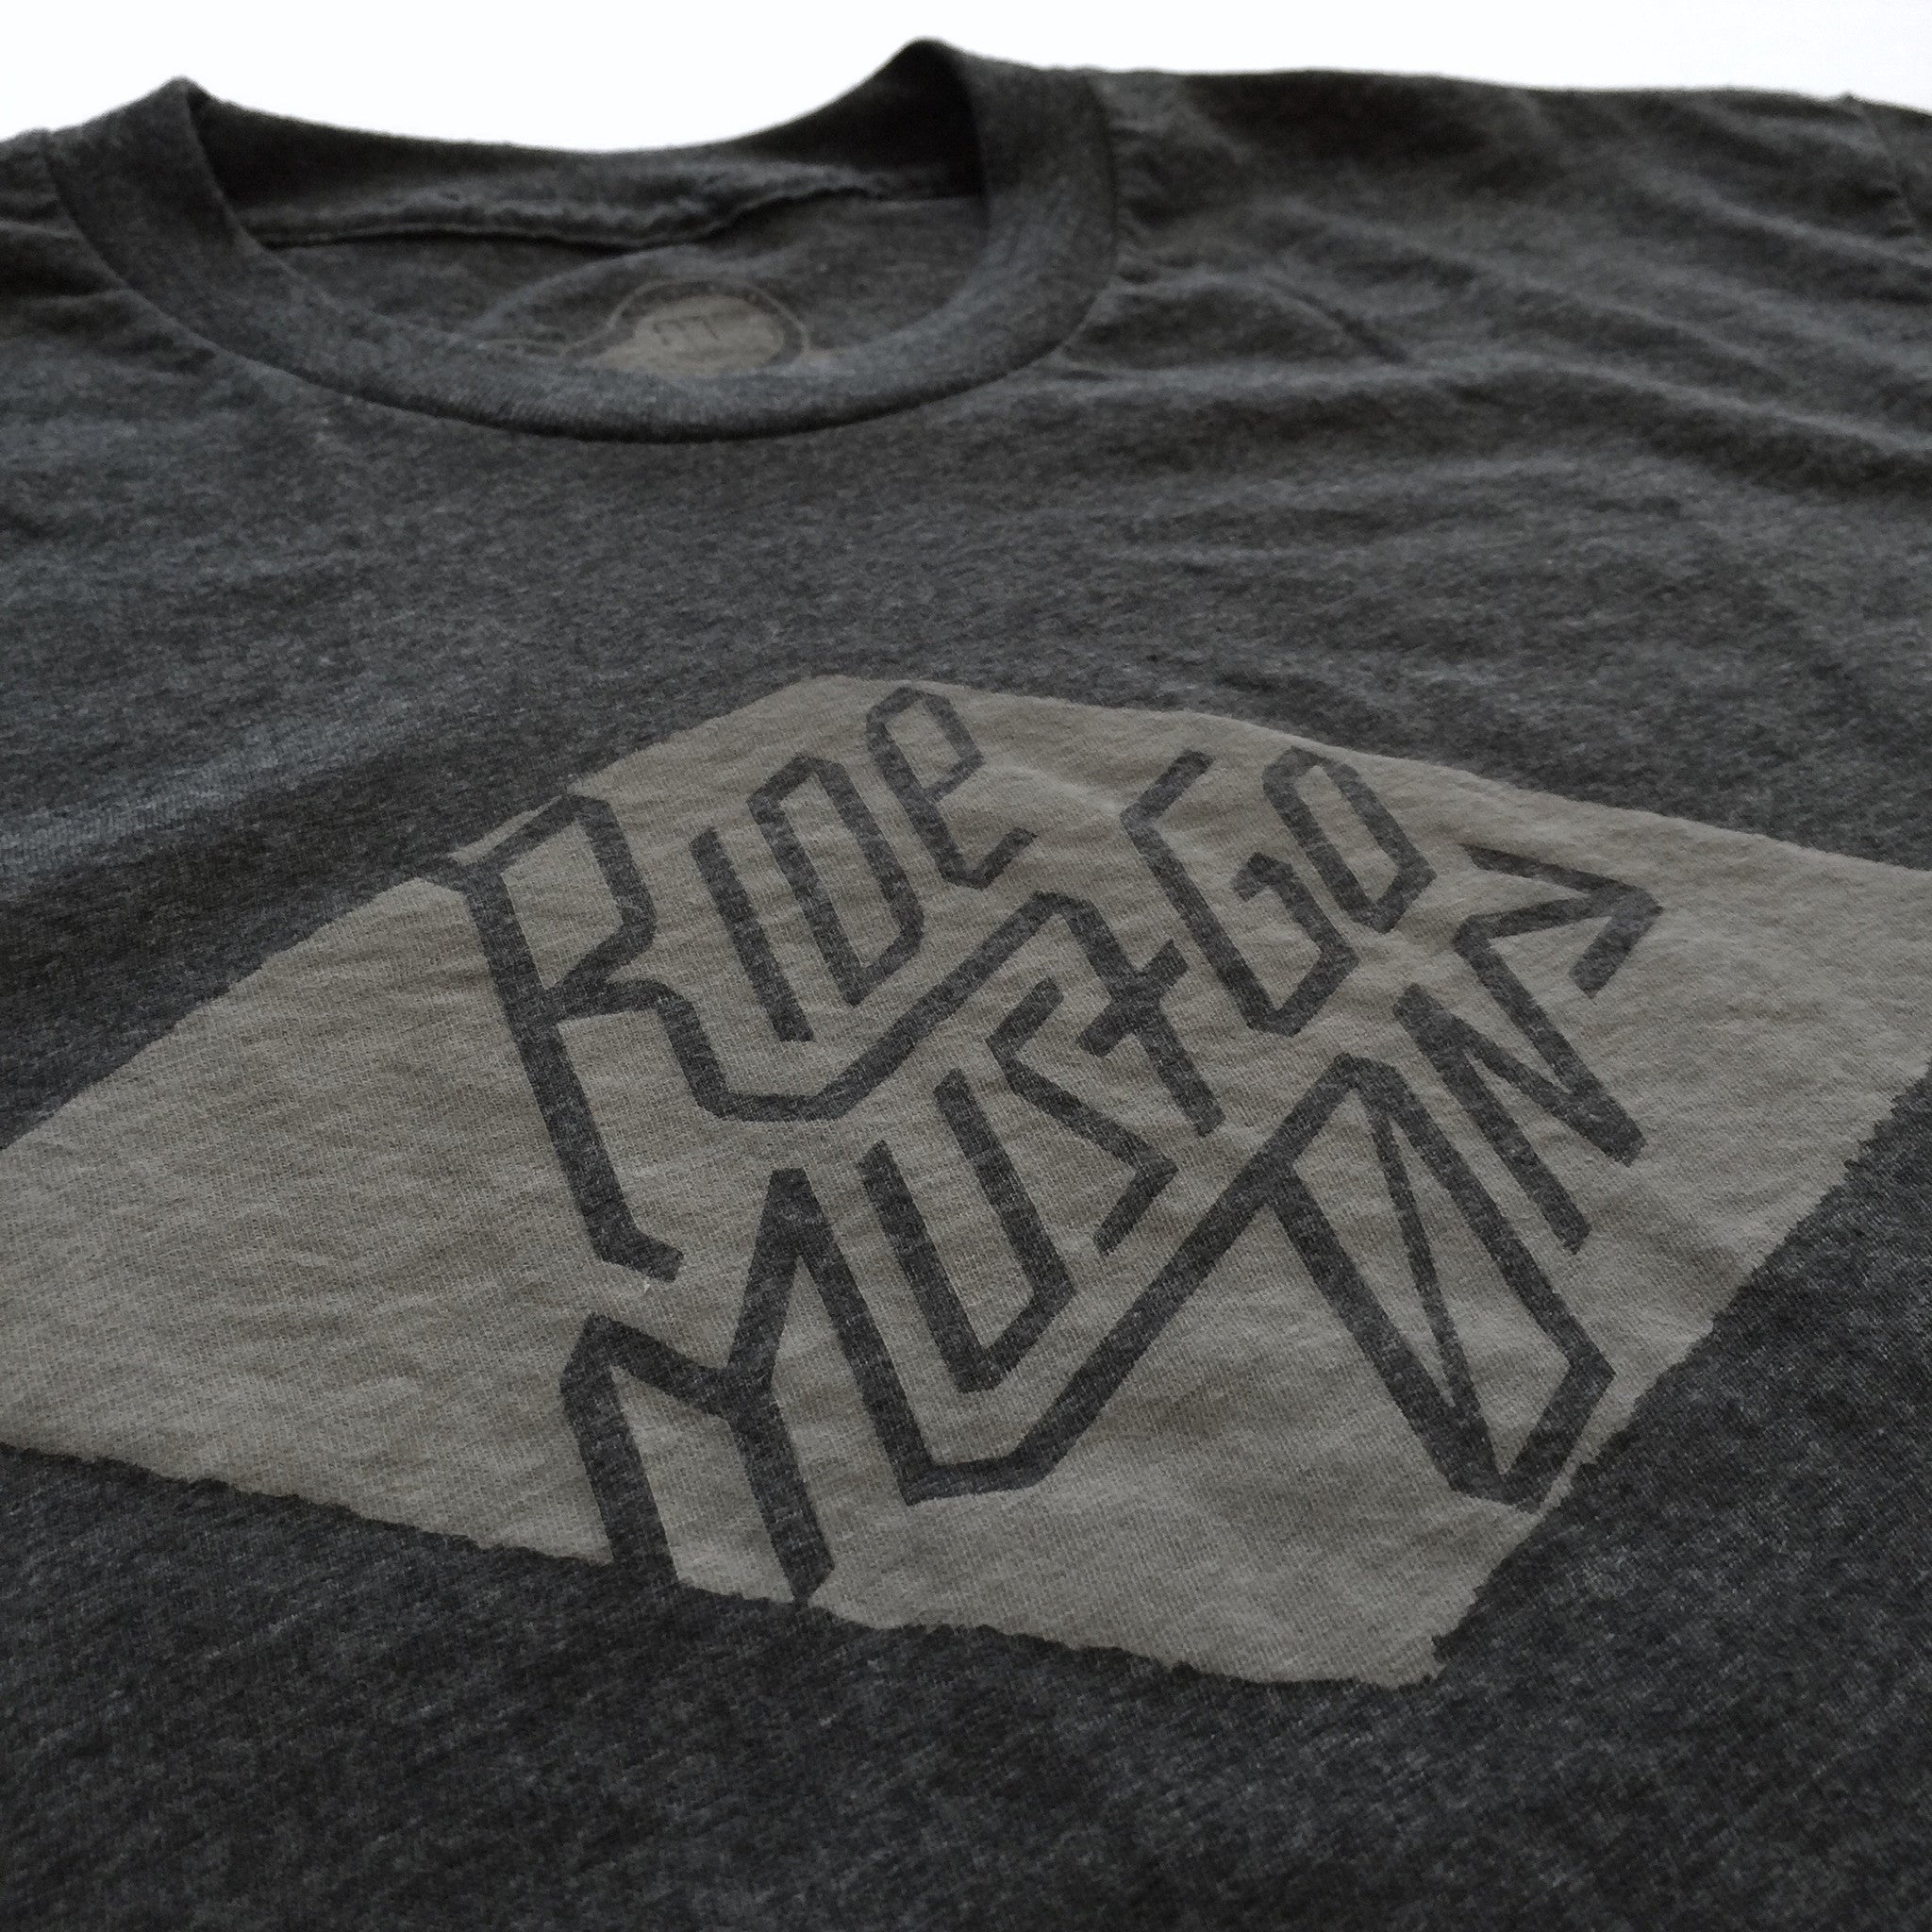 RIDE MUST GO ON 2015 TEE - ON SALE